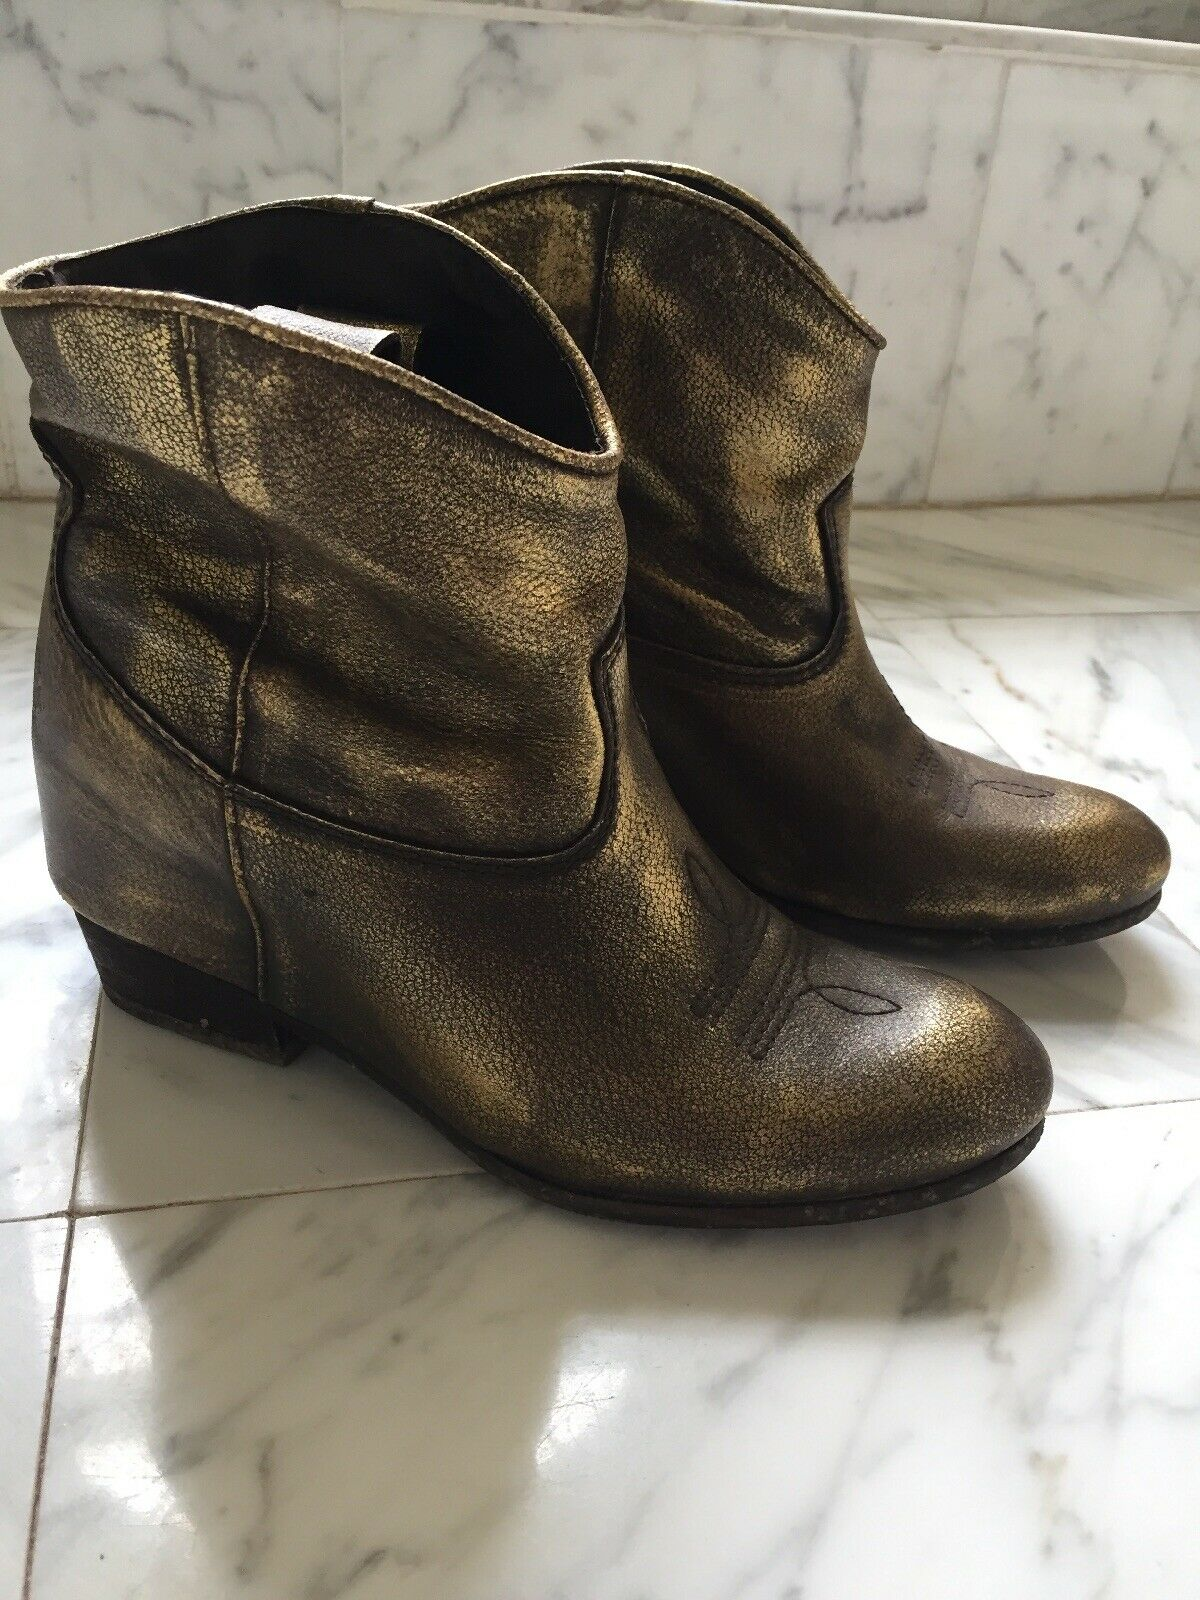 Felmini Hidden Wedge Booties gold Bronze Metallic Boho Leather Boots 37 US 7